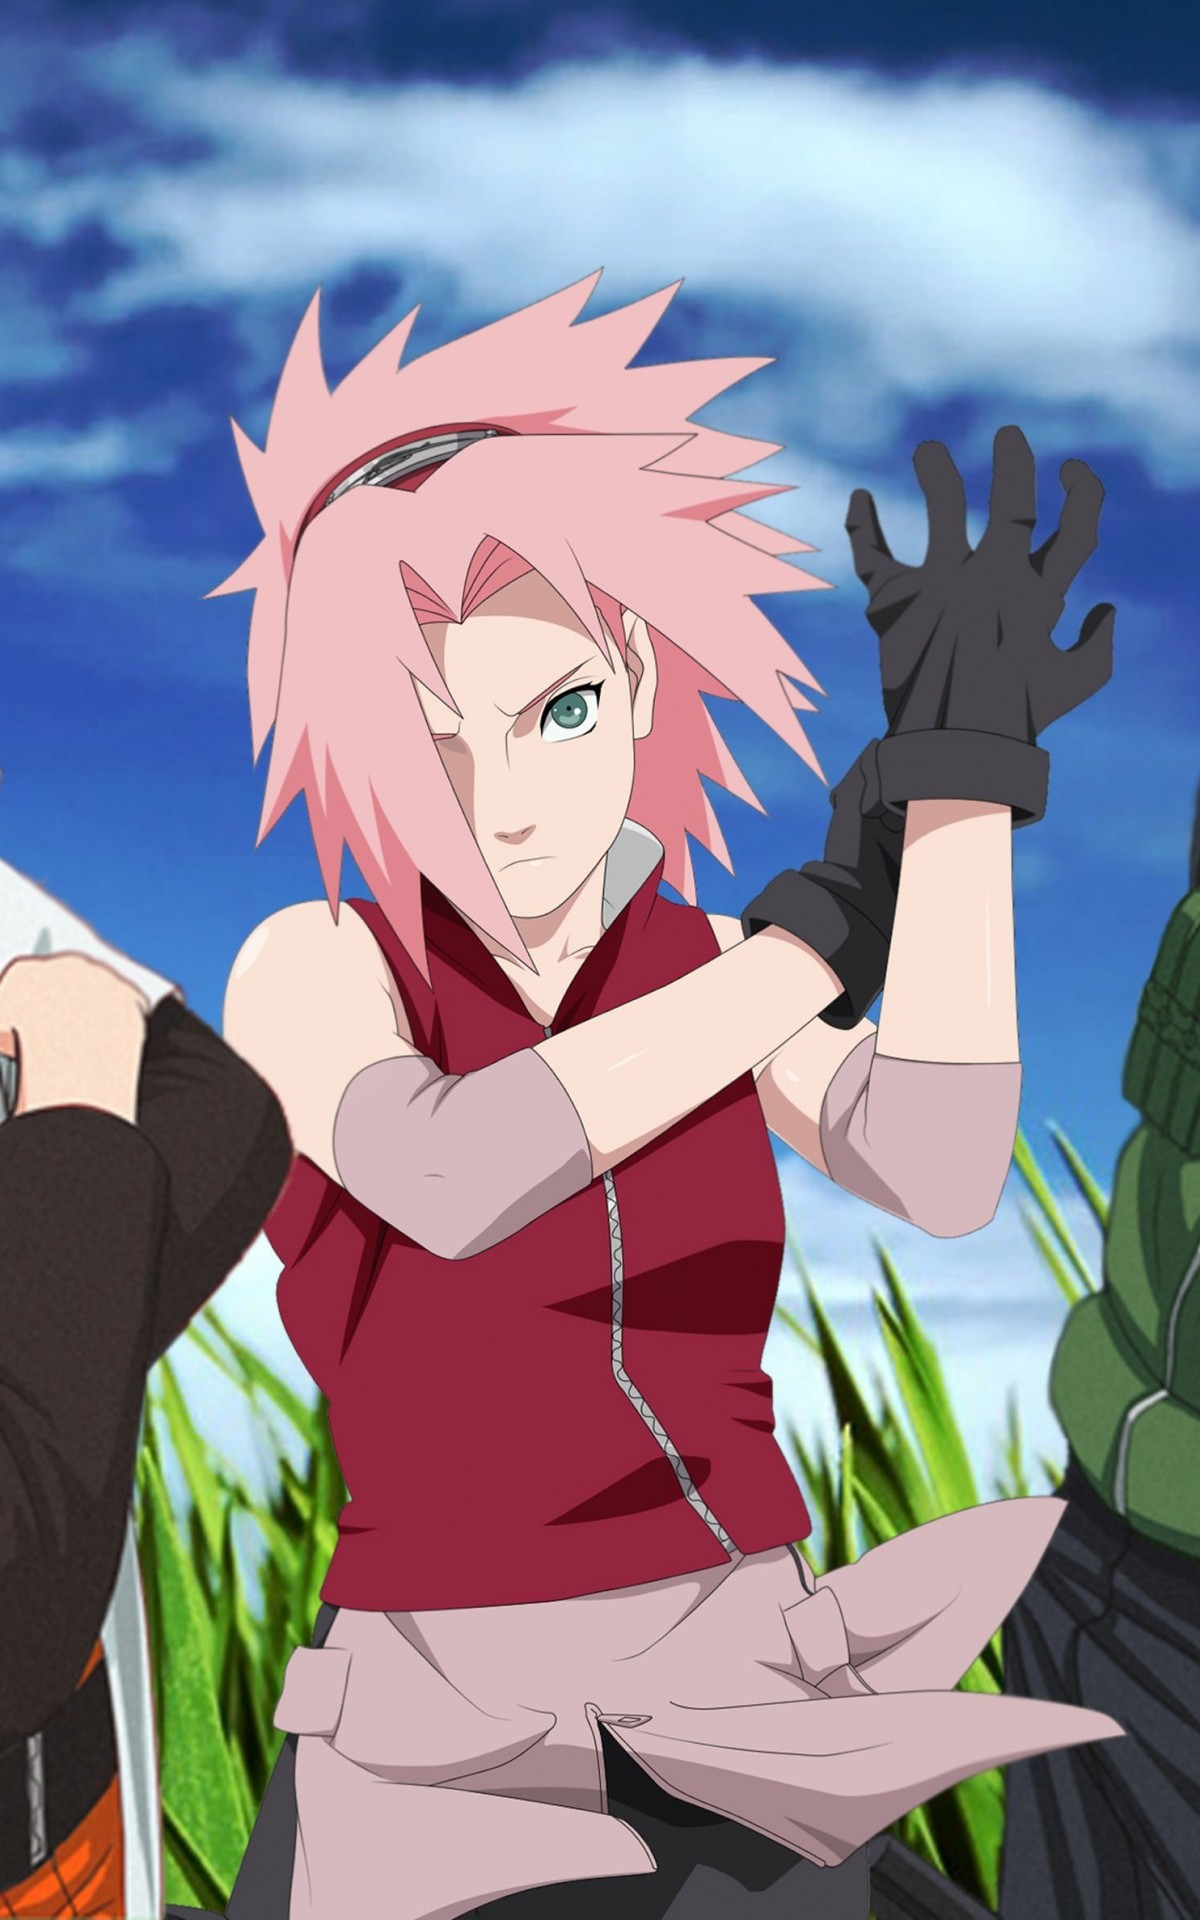 Naruto, Sakura and Sasuke Wallpaper for Amazon Kindle Fire HDX